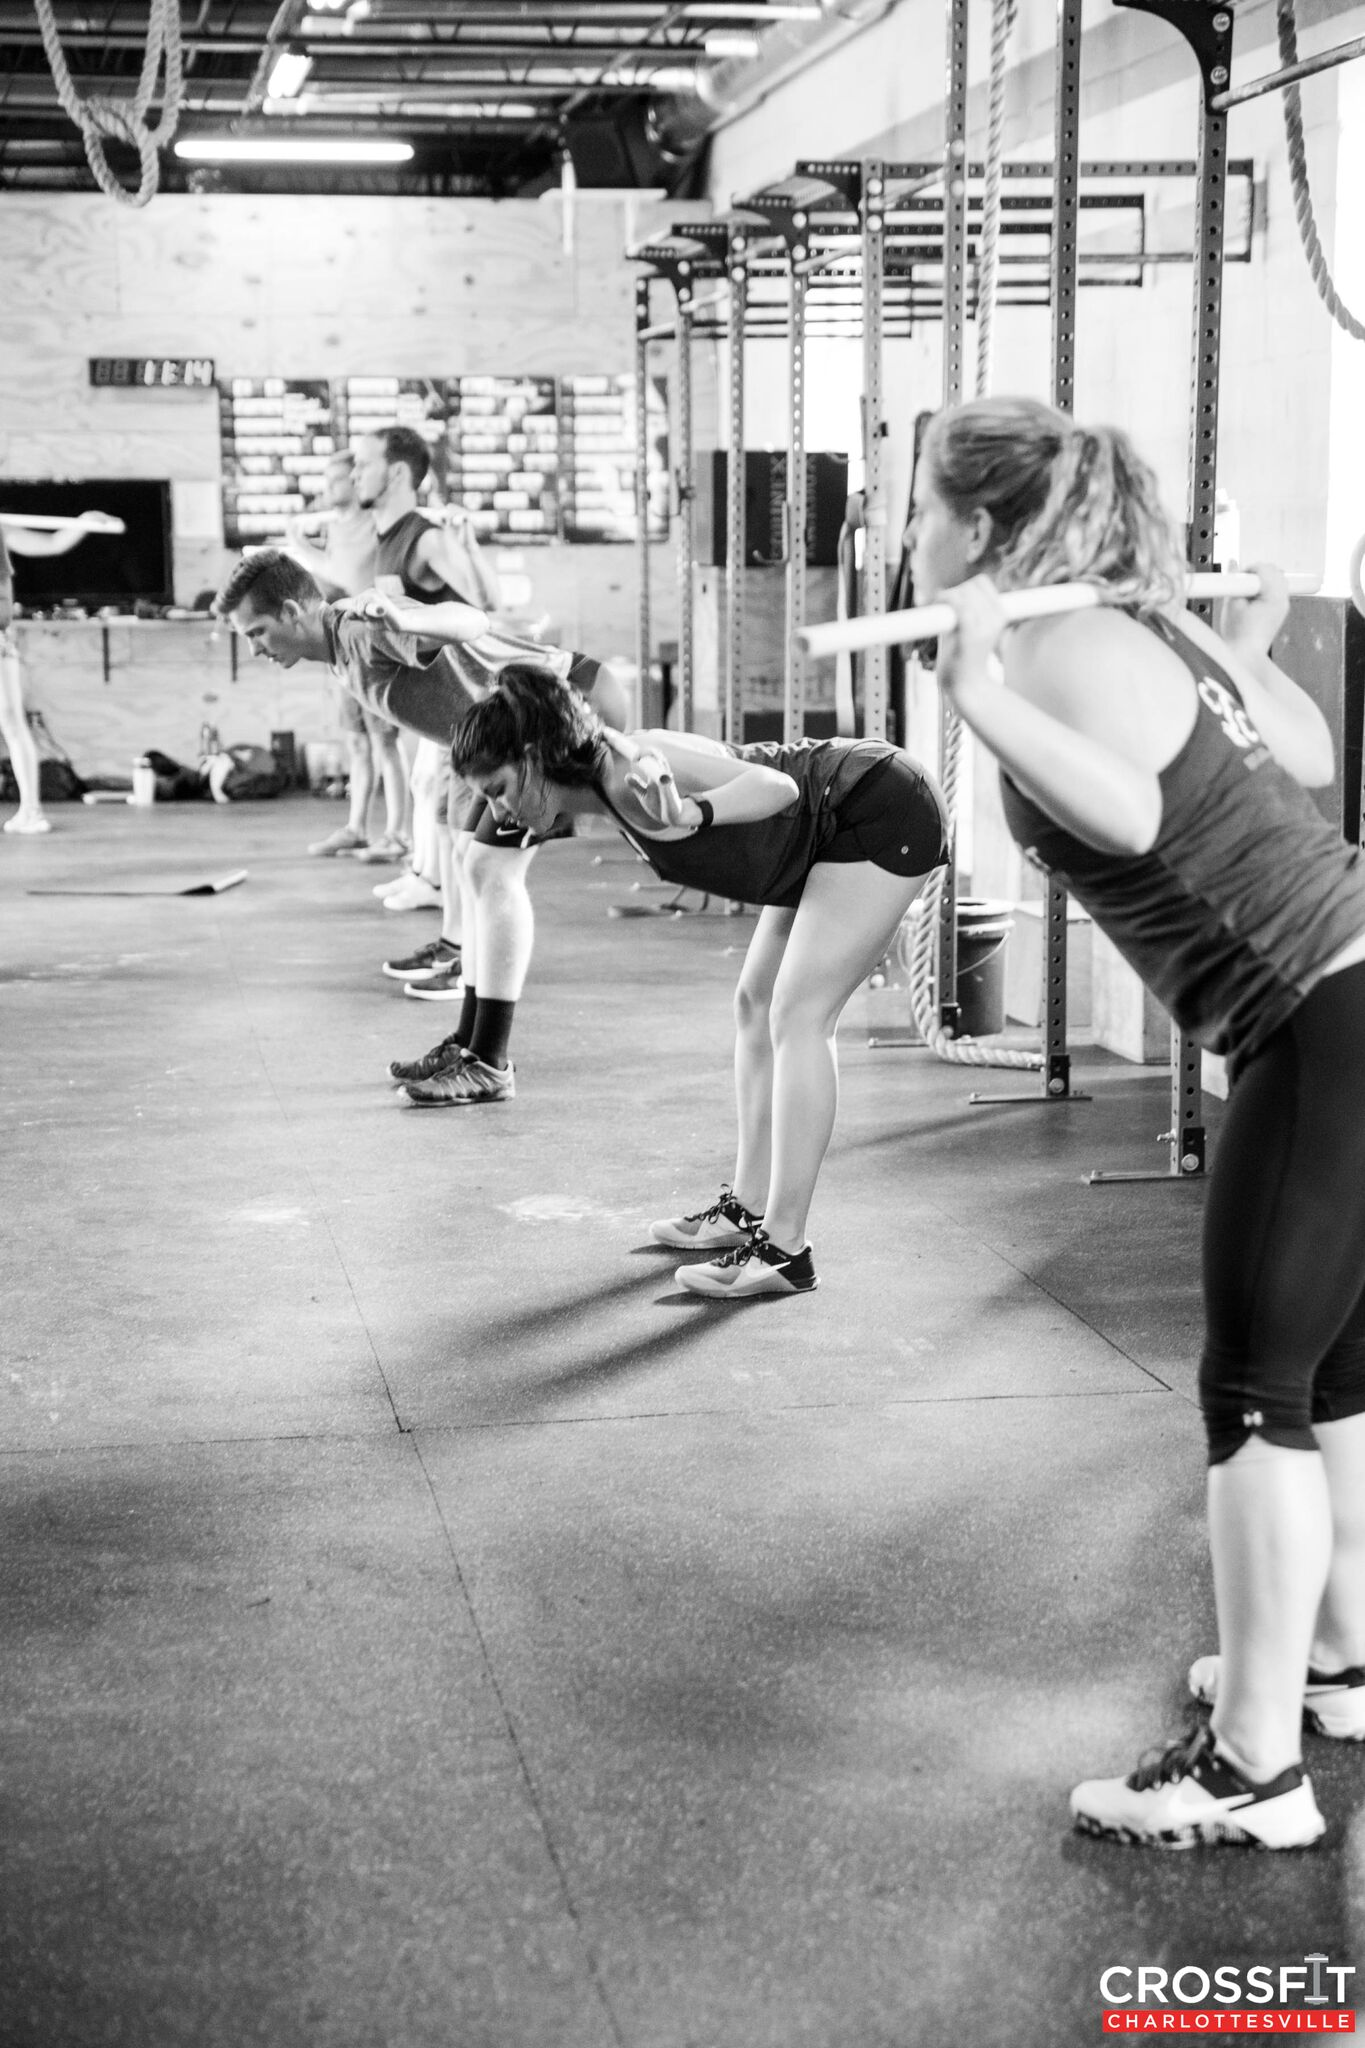 crossfit charlottesville_0592_preview.jpeg